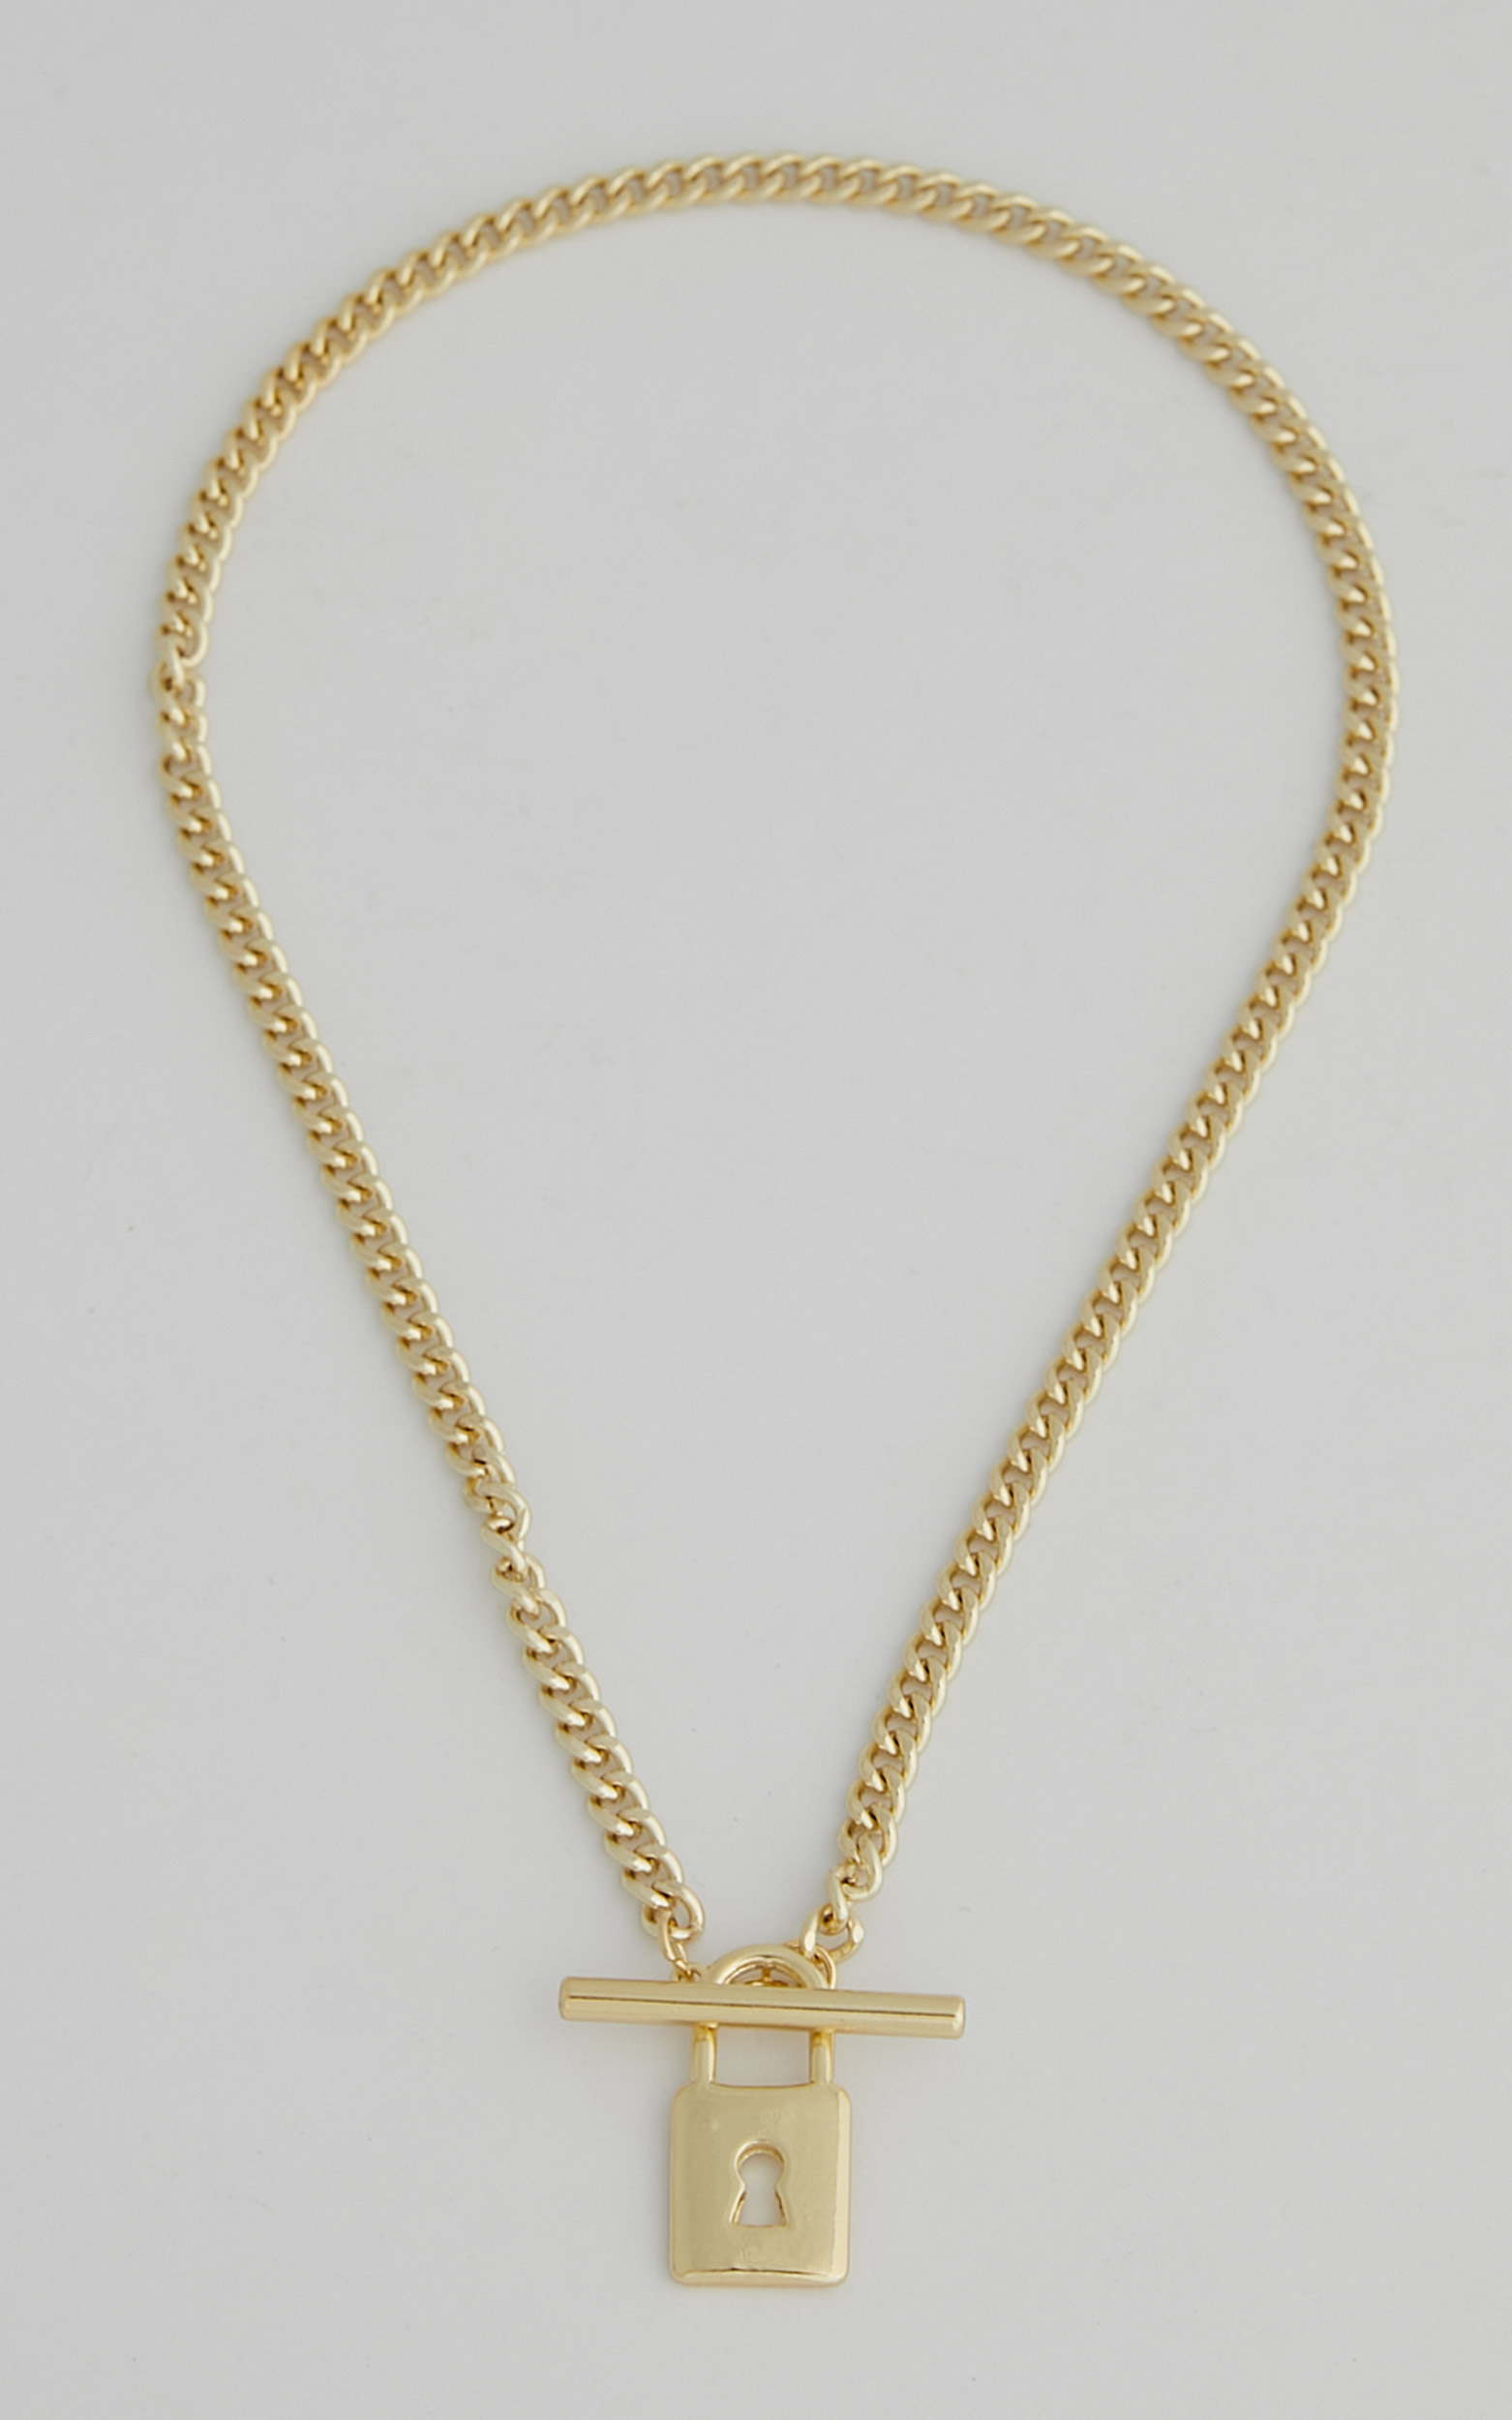 Darby Lock Necklace in Gold - NoSize, GLD1, hi-res image number null